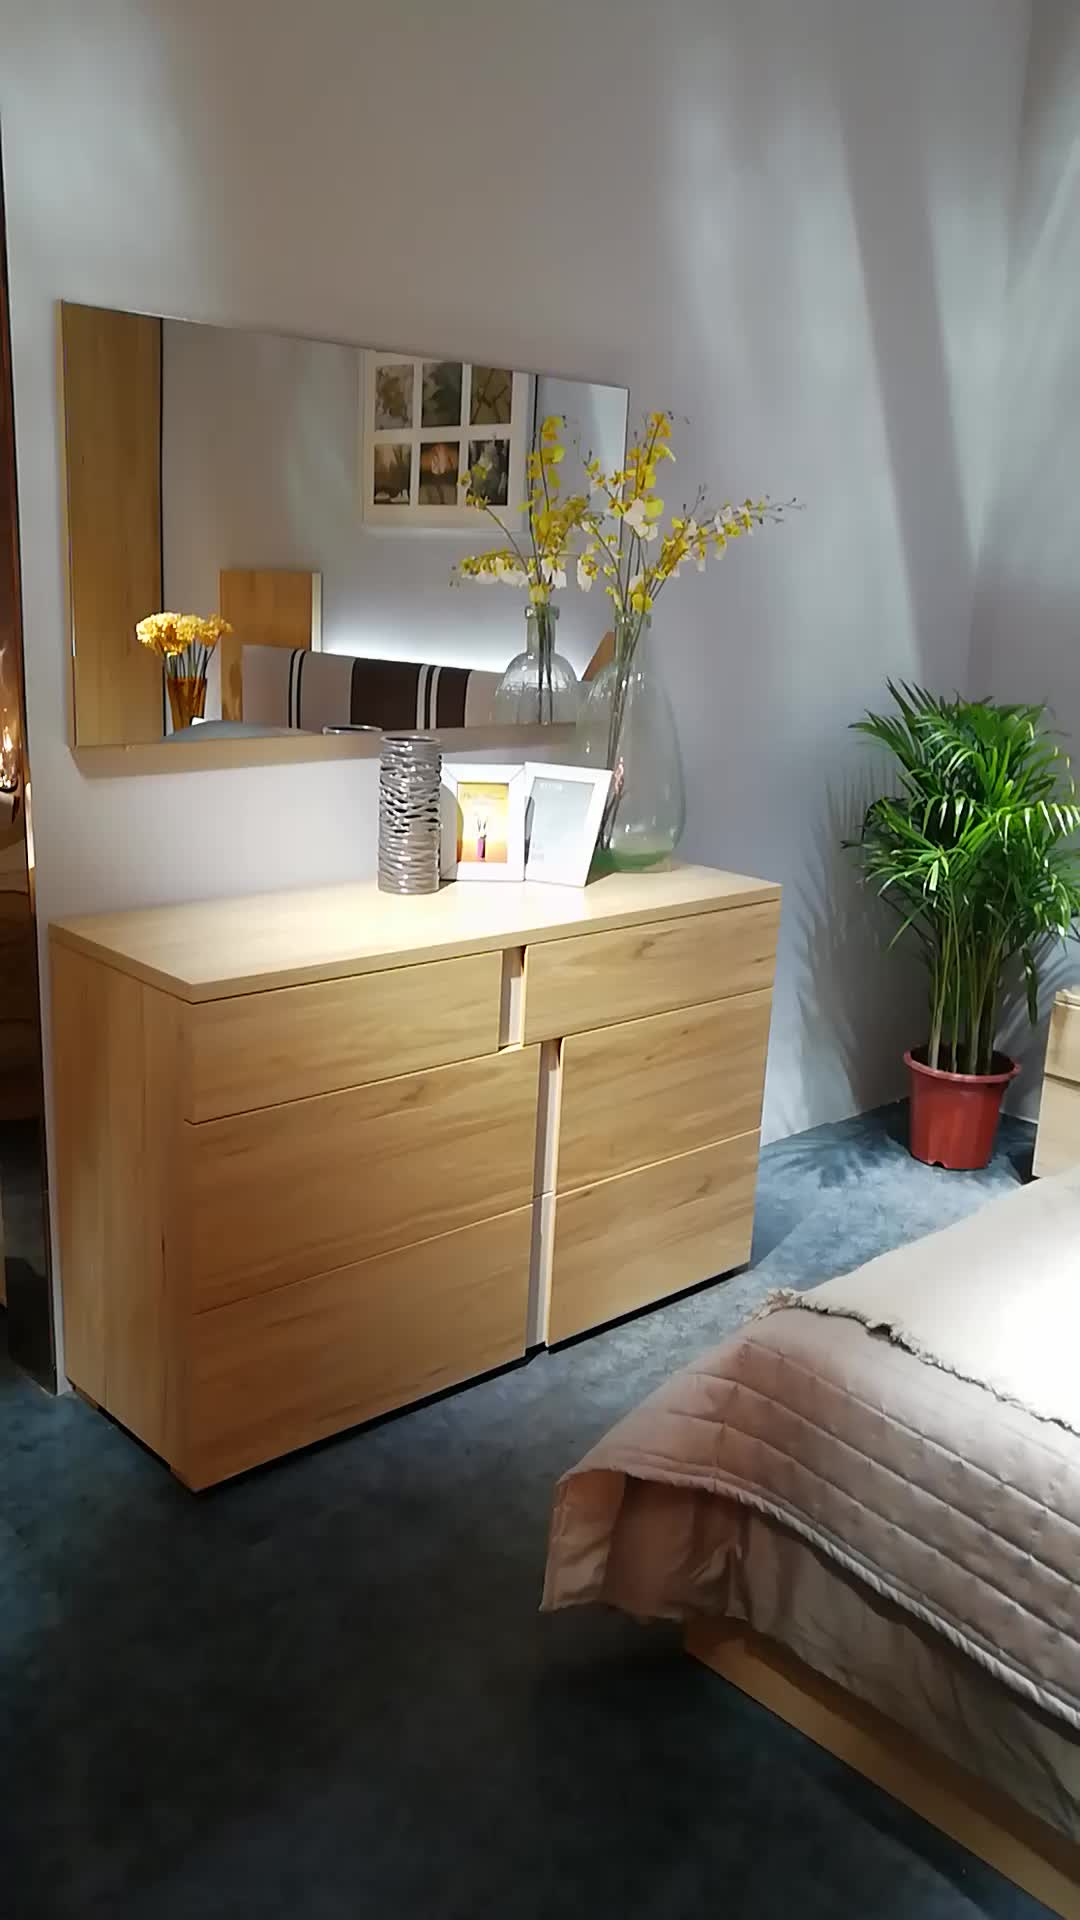 Home cheap traditional bed room furniture bedroom set - Cheapest place to buy bedroom sets ...